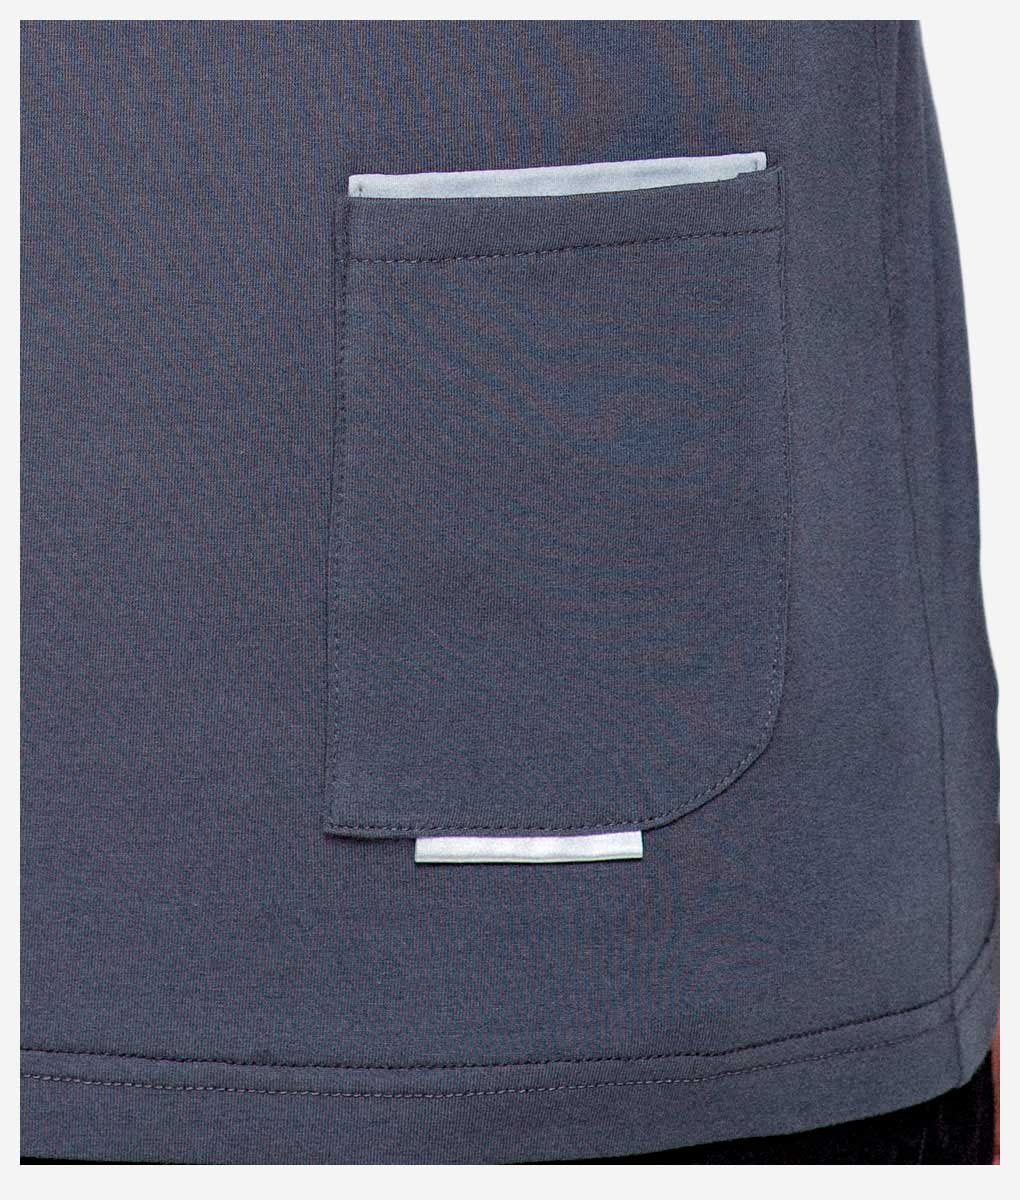 Transparent-casual-cycling-titanium-classic-back-pocket-detail